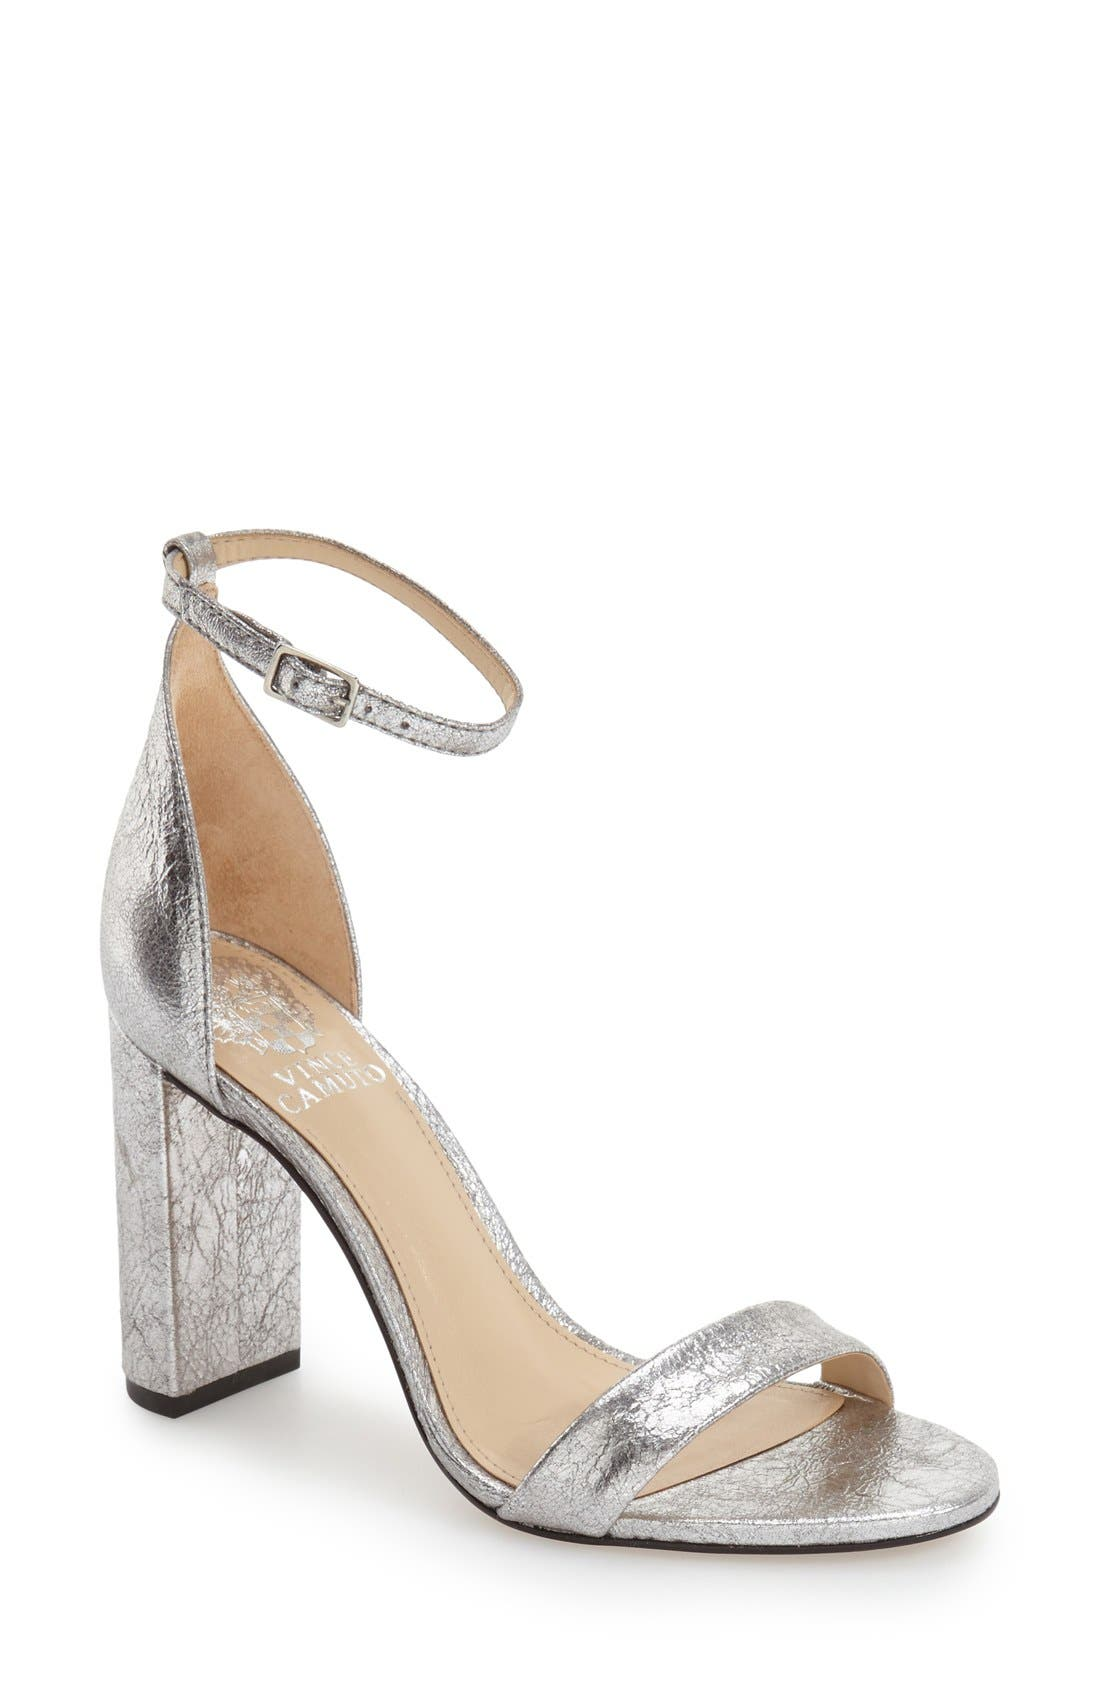 Main Image - Vince Camuto 'Mairana' Ankle Strap Sandal (Women)